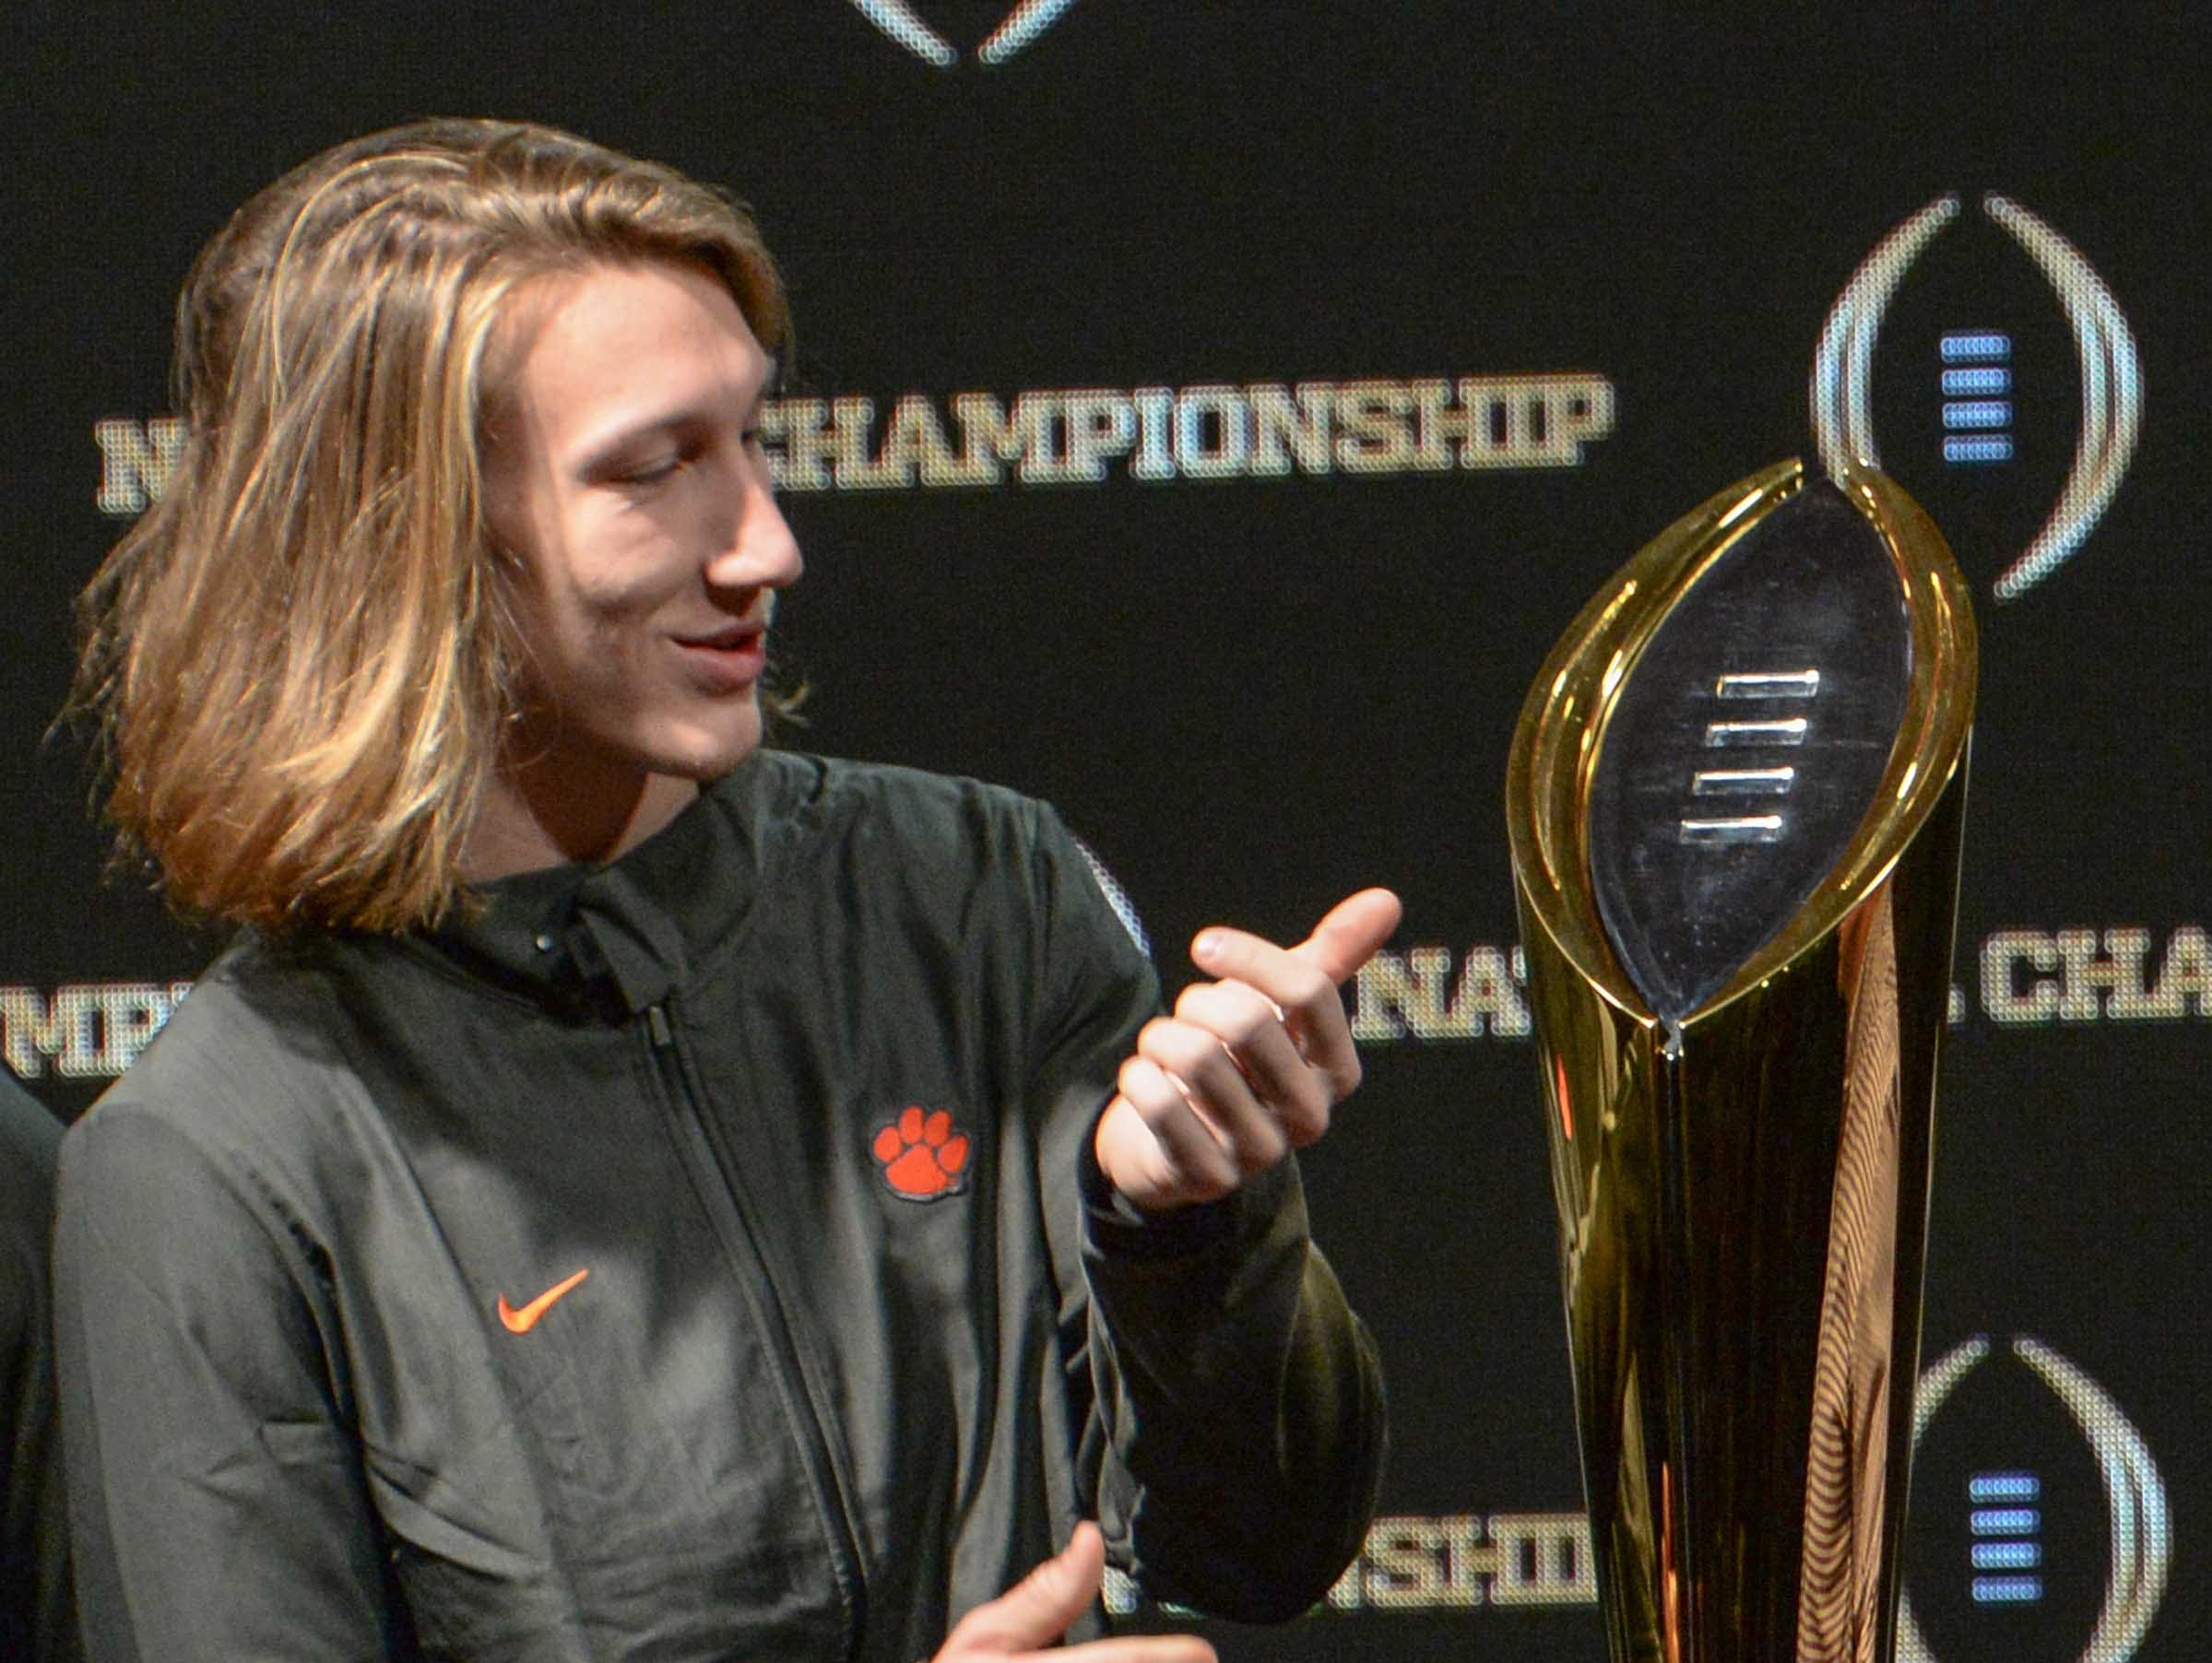 Clemson quarterback Trevor Lawrence stands near the championship trophy during the champions press conference the day after the College Football Championship in San Jose, California Tuesday, January 8, 2019.